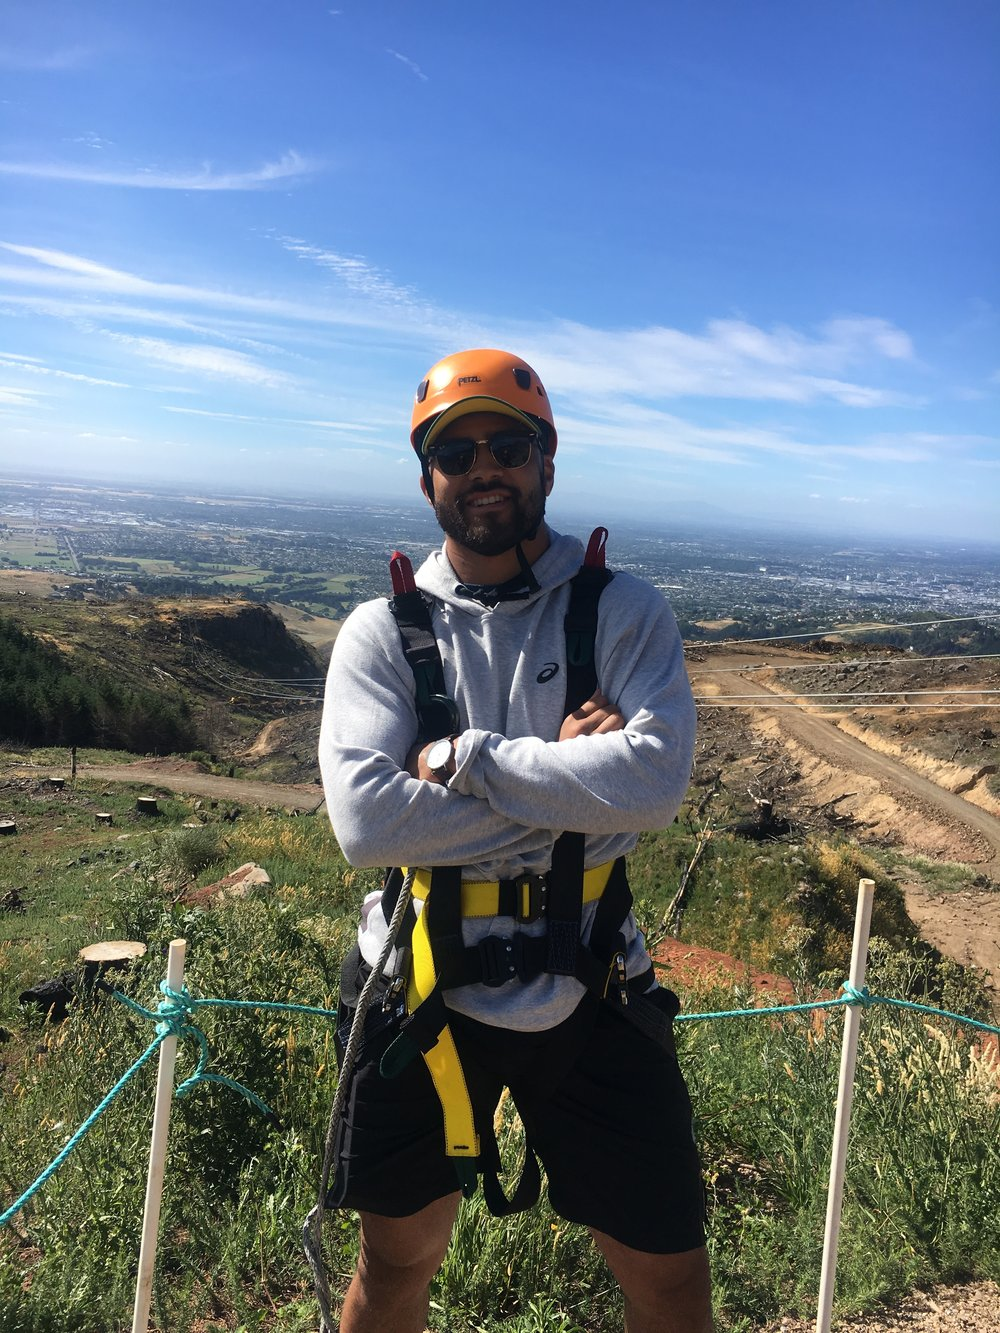 Richie Mounga at Adventure Park with Romer app